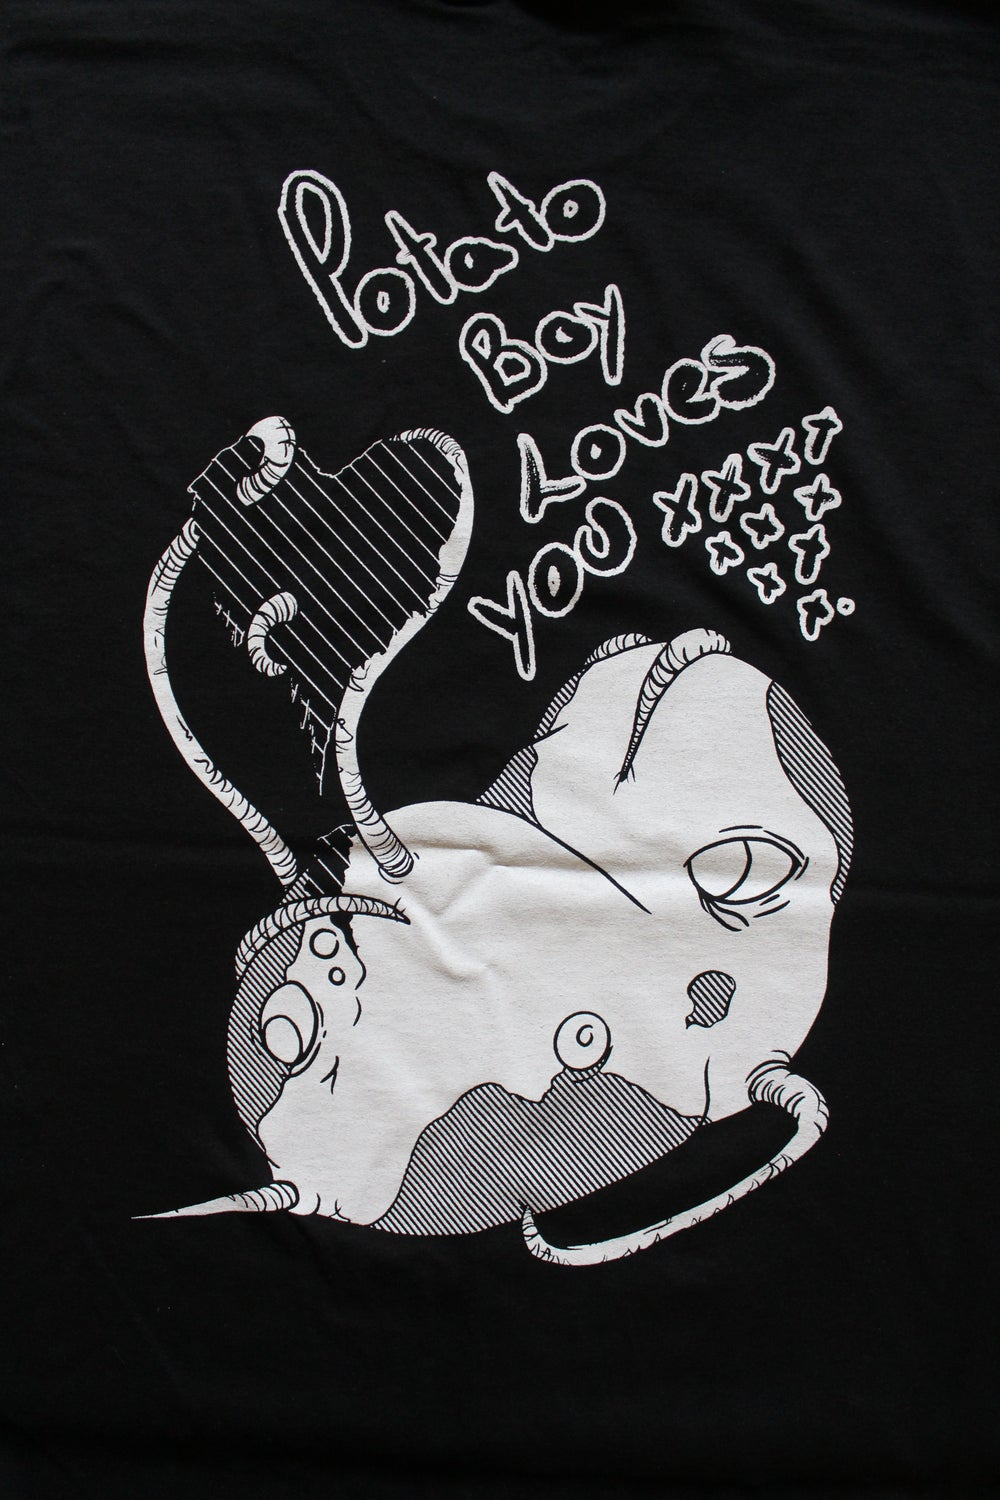 Potato Boy loves you T-shirt